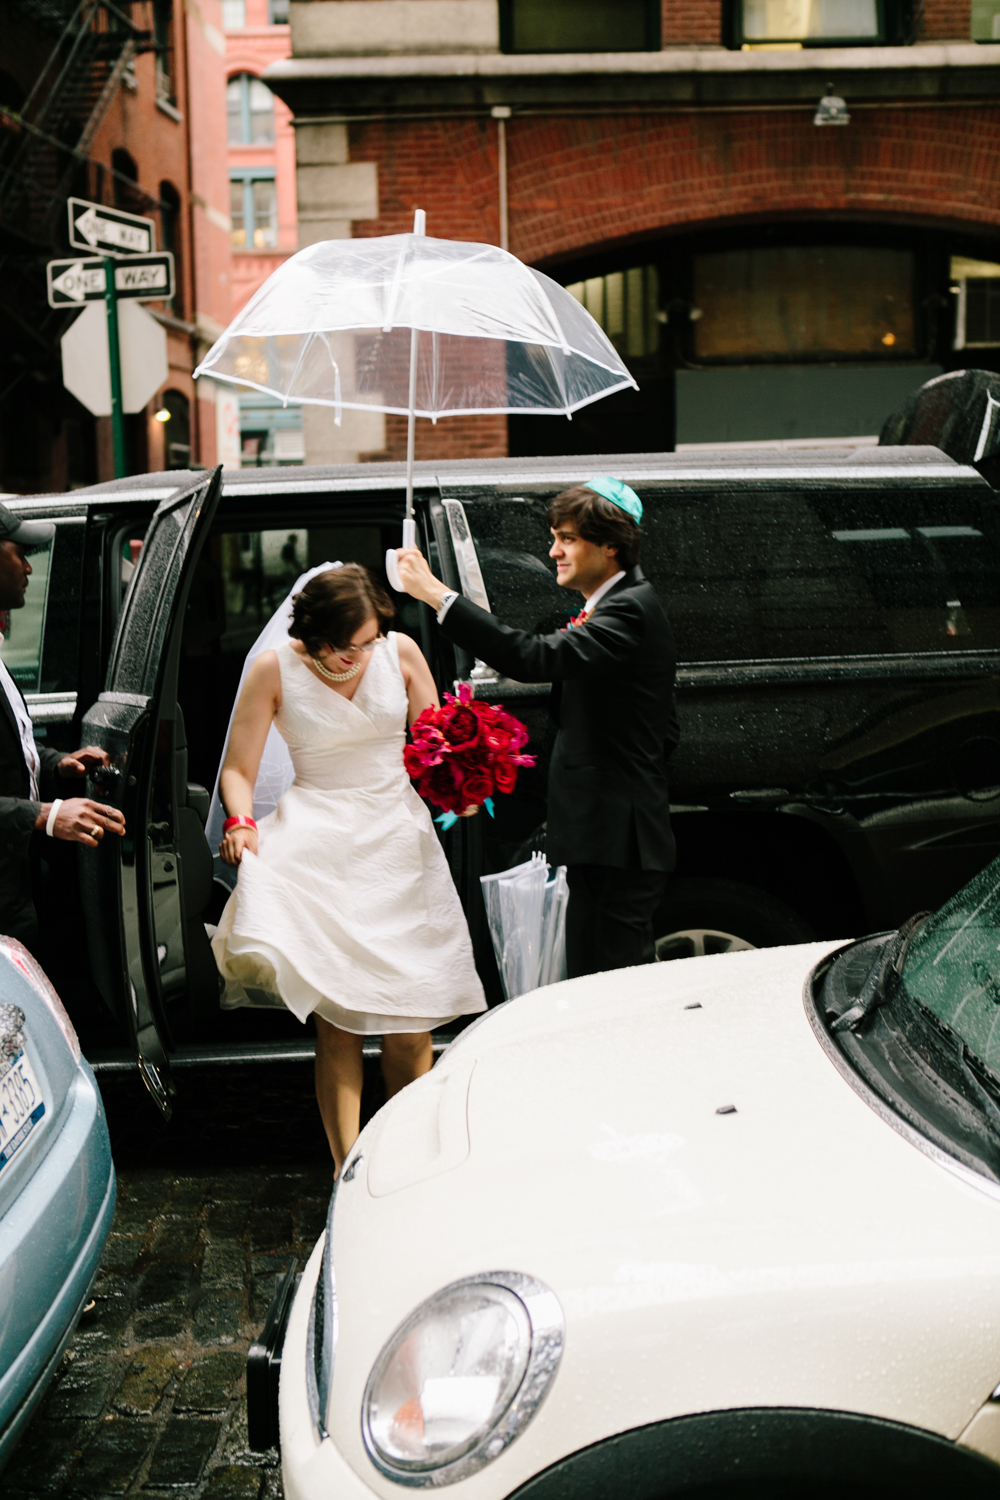 housing works bookstore wedding photos 14.jpg